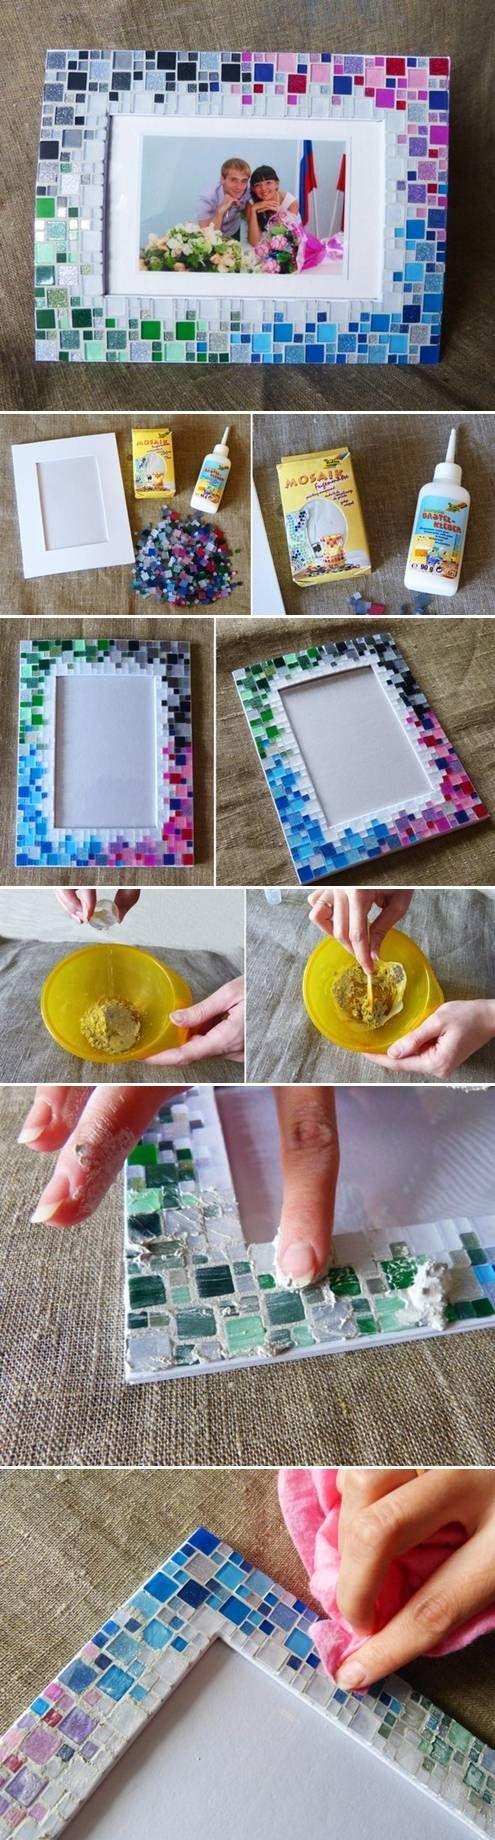 Diy colorful mosaic picture frame cute colorful colors diy frame diy colorful mosaic picture frame cute colorful colors diy frame crafts easy crafts diy ideas diy solutioingenieria Image collections